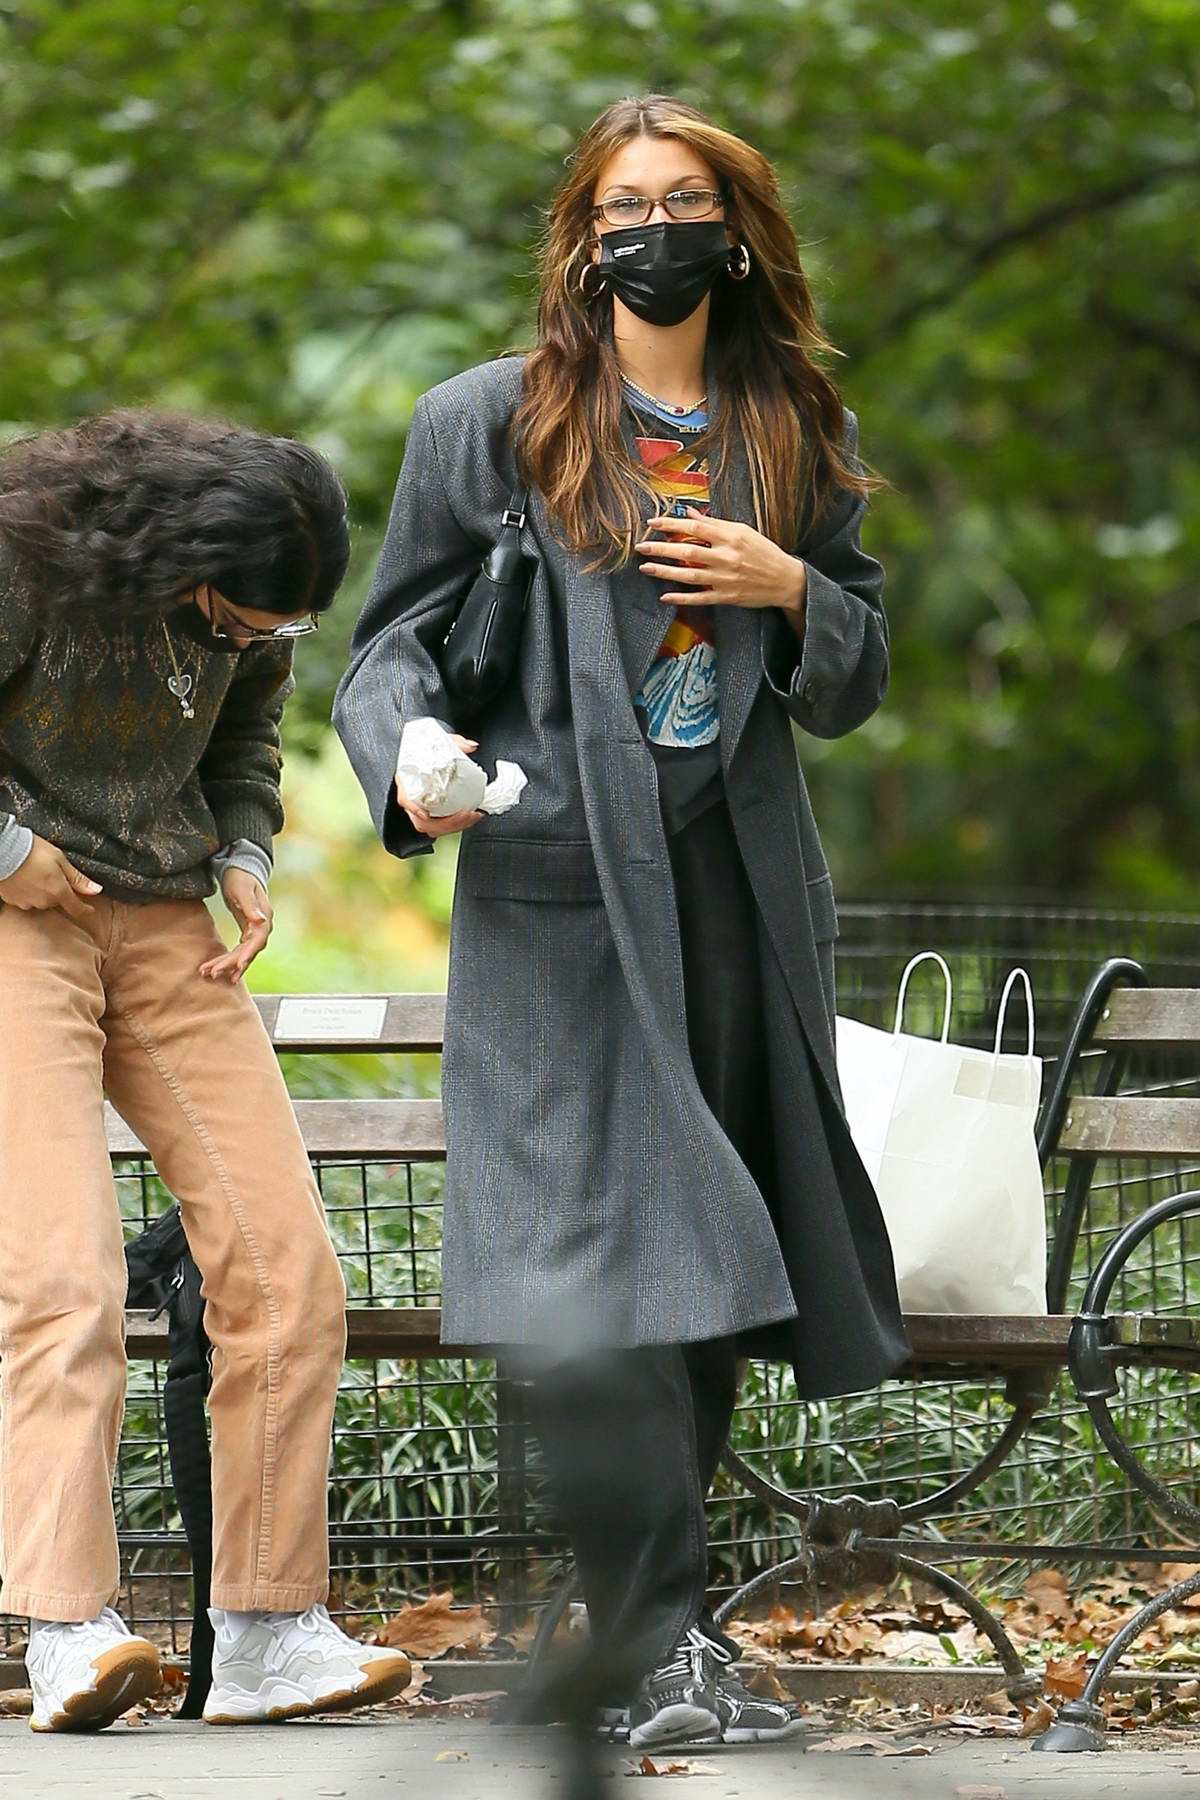 Bella Hadid enjoys lunch with a friend on a park bench in Washington Square Park in New York City